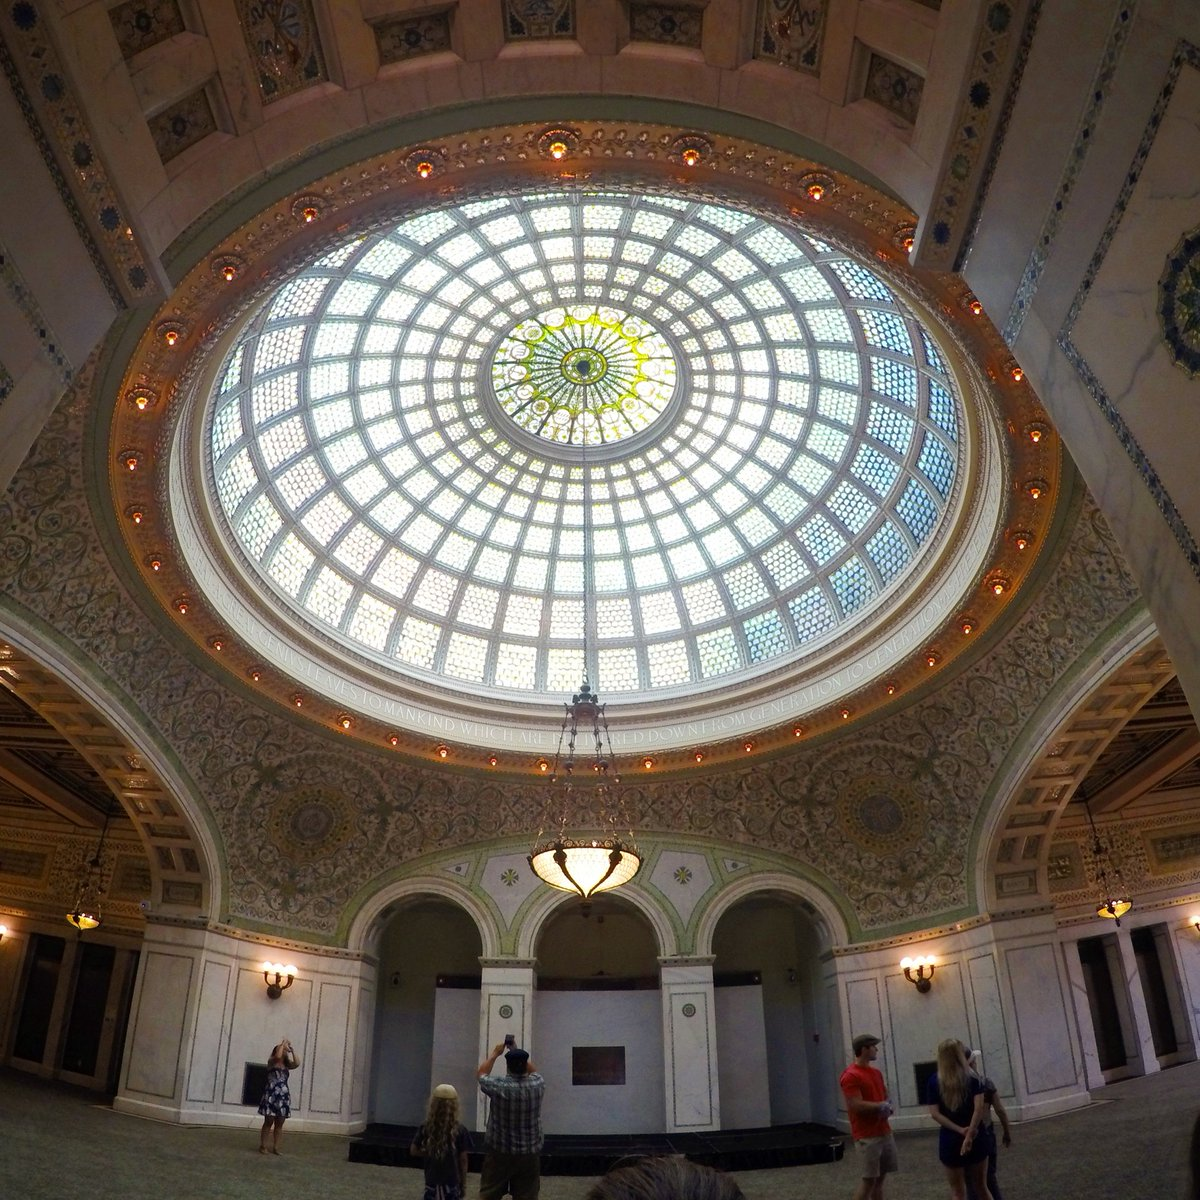 Did you know the Chicago Cultural Center is home to the world's largest Tiffany glass dome? Beautiful #familytravel https://t.co/NExTeMFjhR